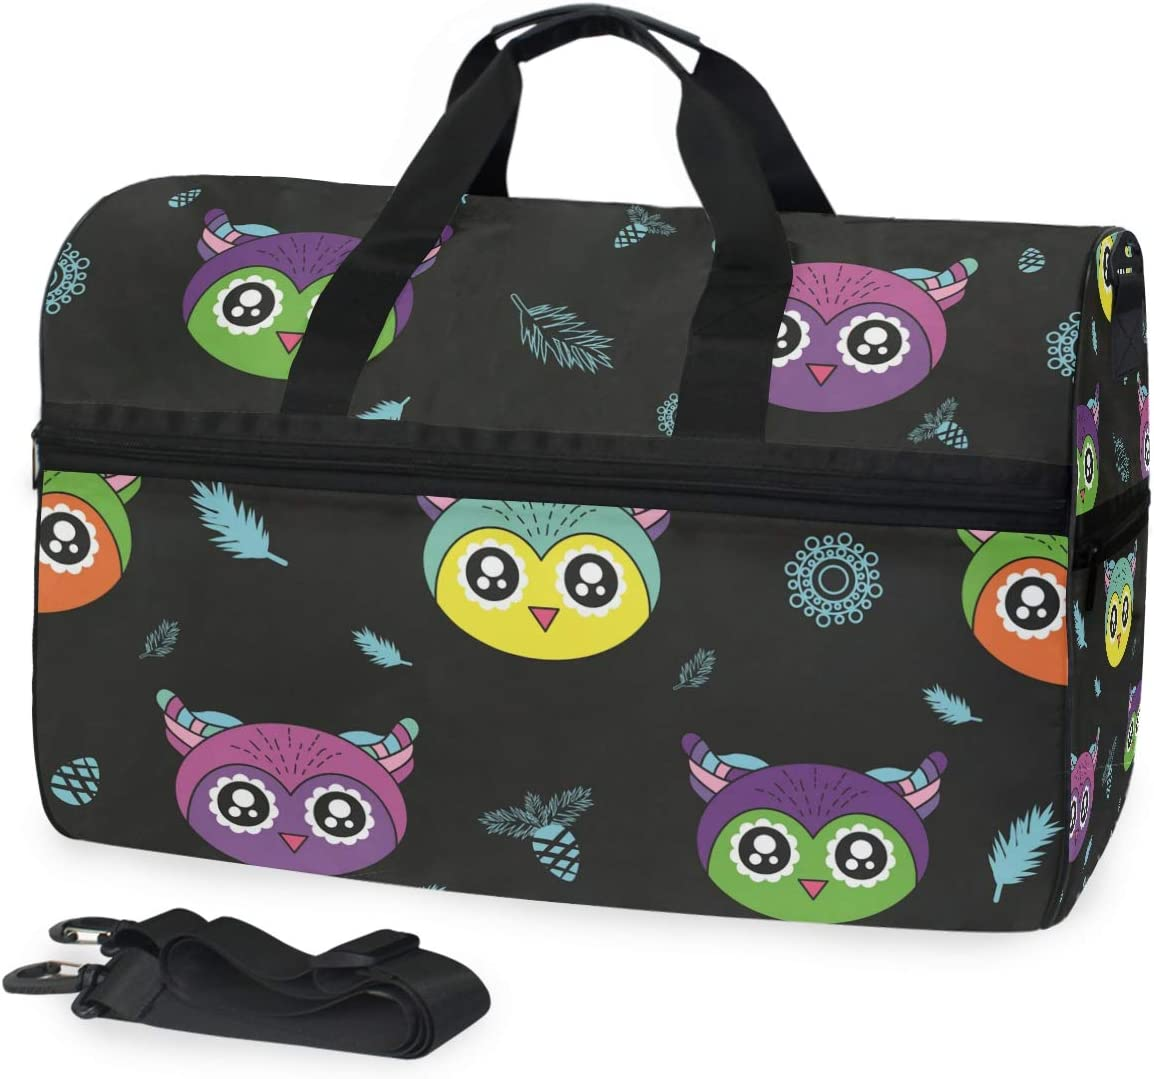 AHOMY Cute Kids Owl Sports Gym Bag with Shoes Compartment Travel Duffel Bag